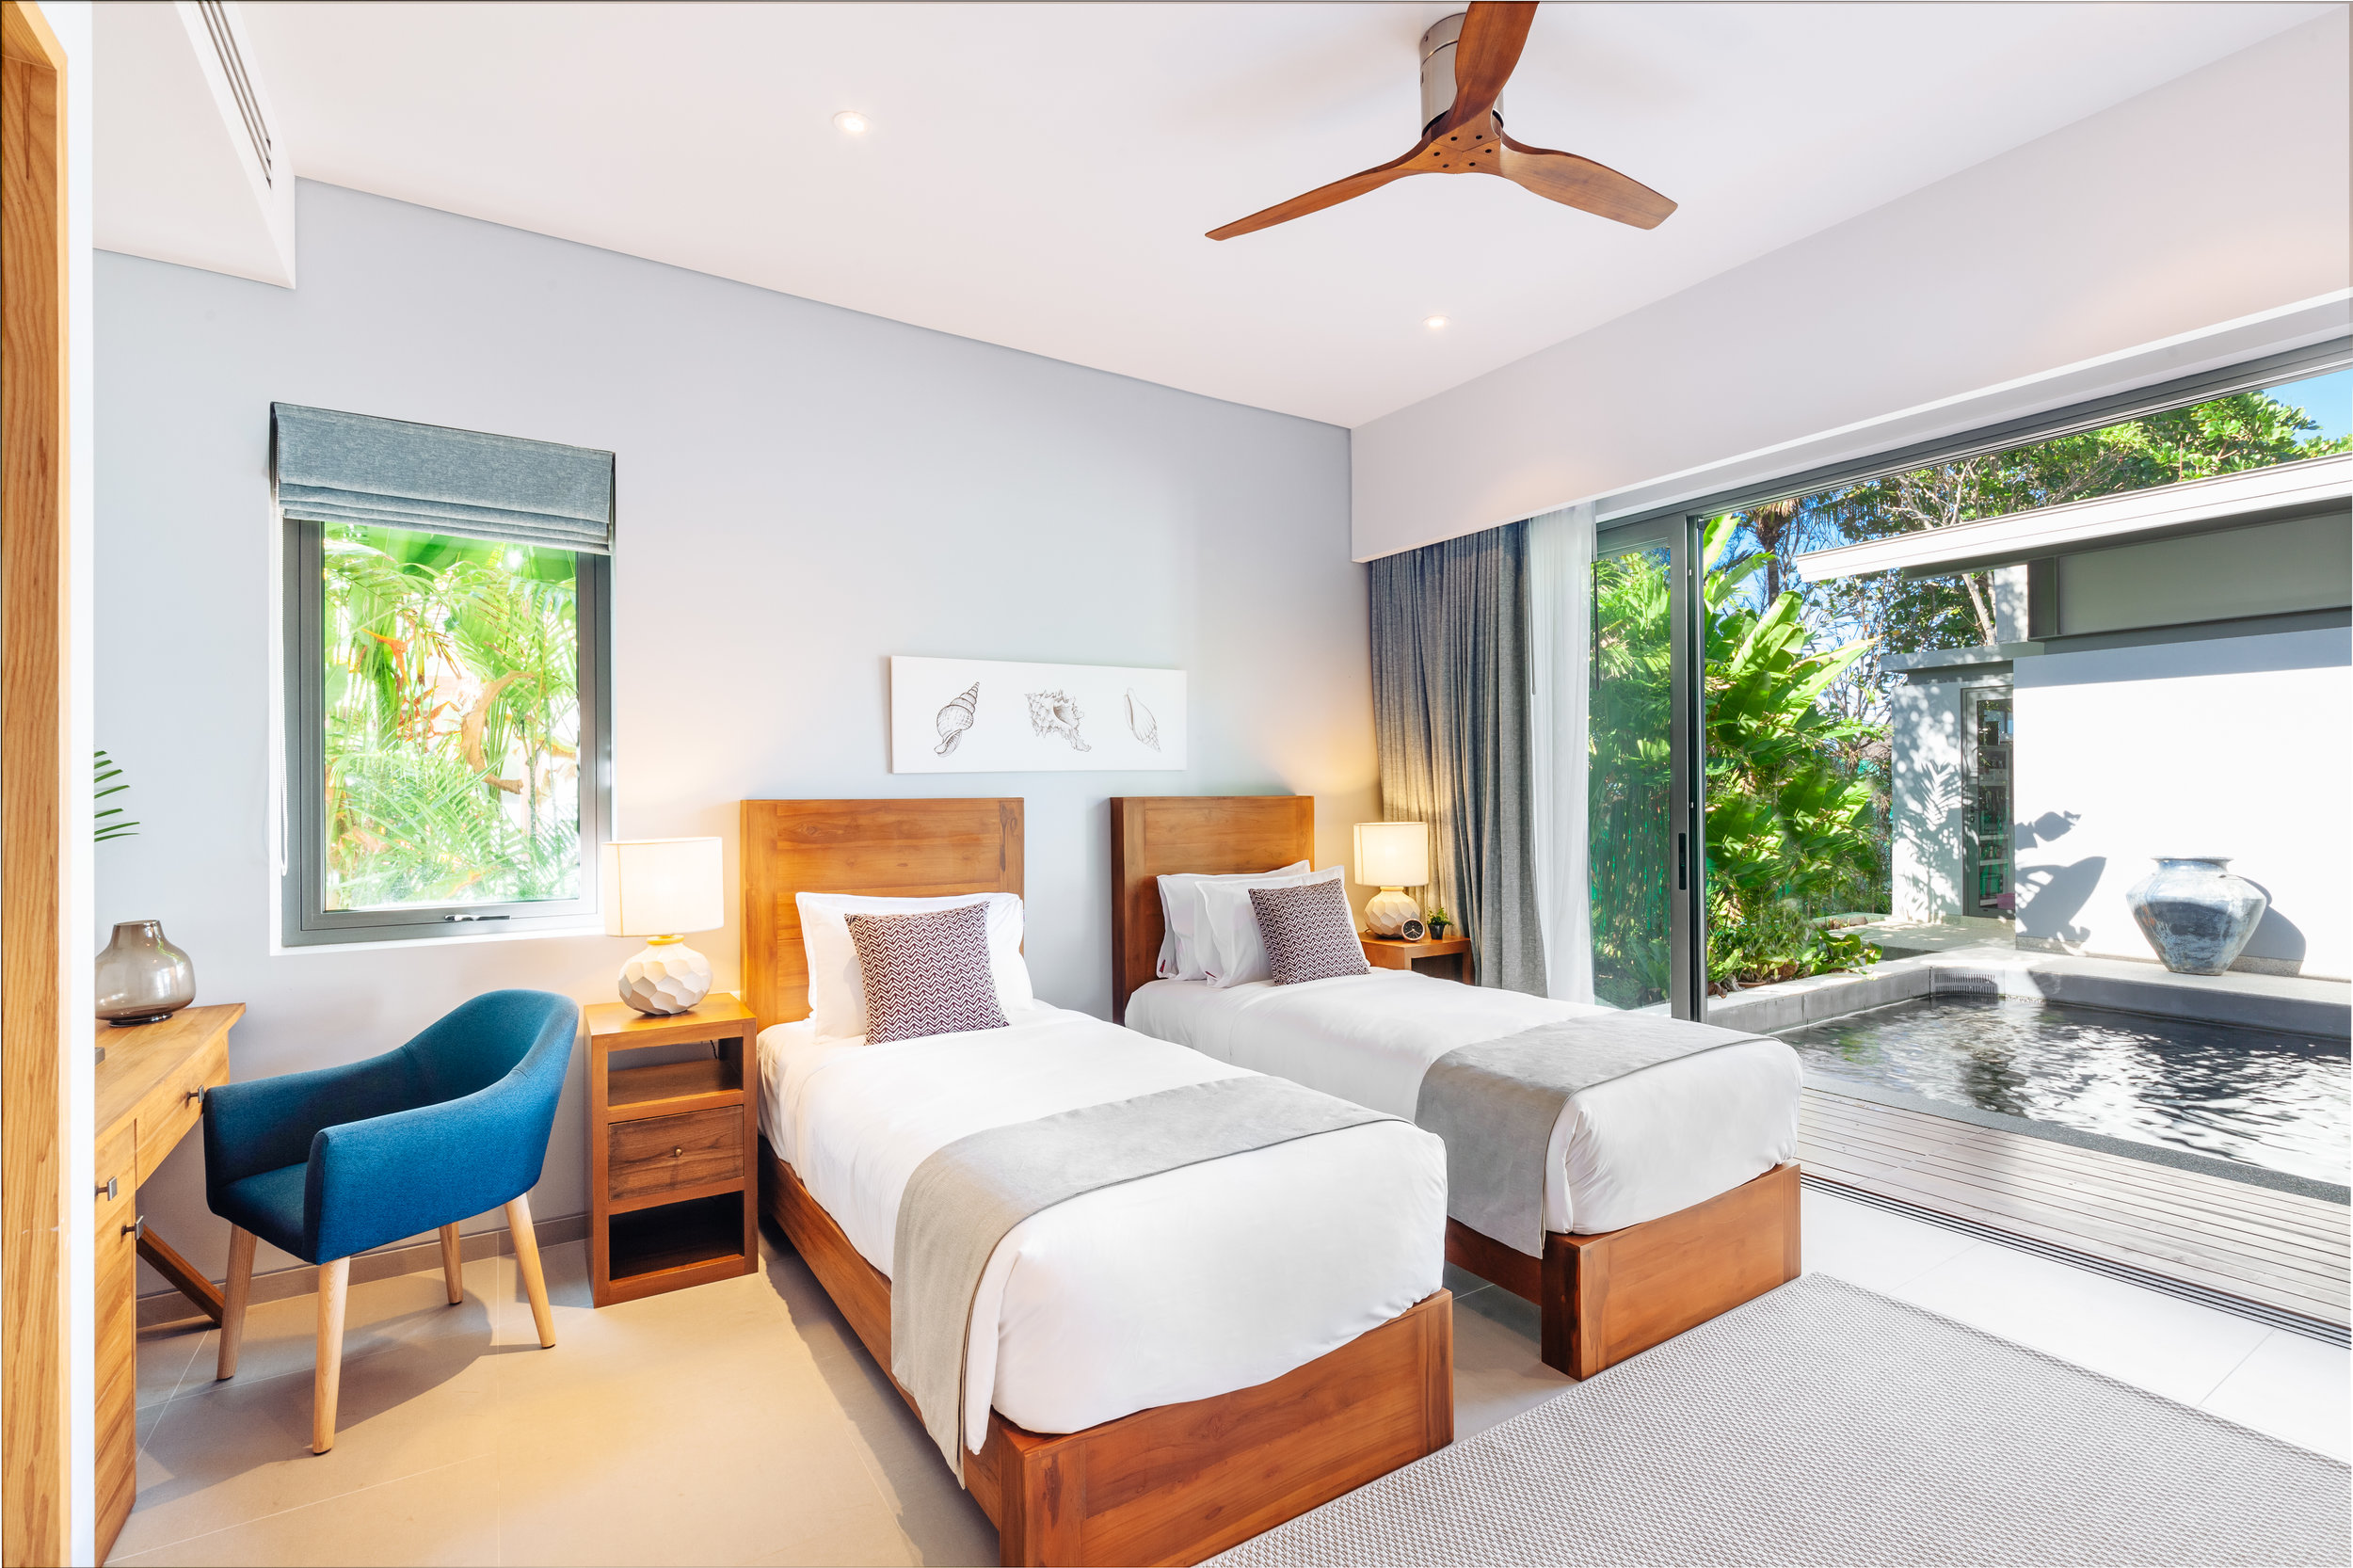 Garden View - 2 Rooms - Ground floor Garden View rooms gives you instant access to tranquility. Adjacent to the Koi pond, these rooms provide an up-close view of the lush tropical garden and are just a few steps away from the pool and beach.Configuration: One King bed or two Single beds